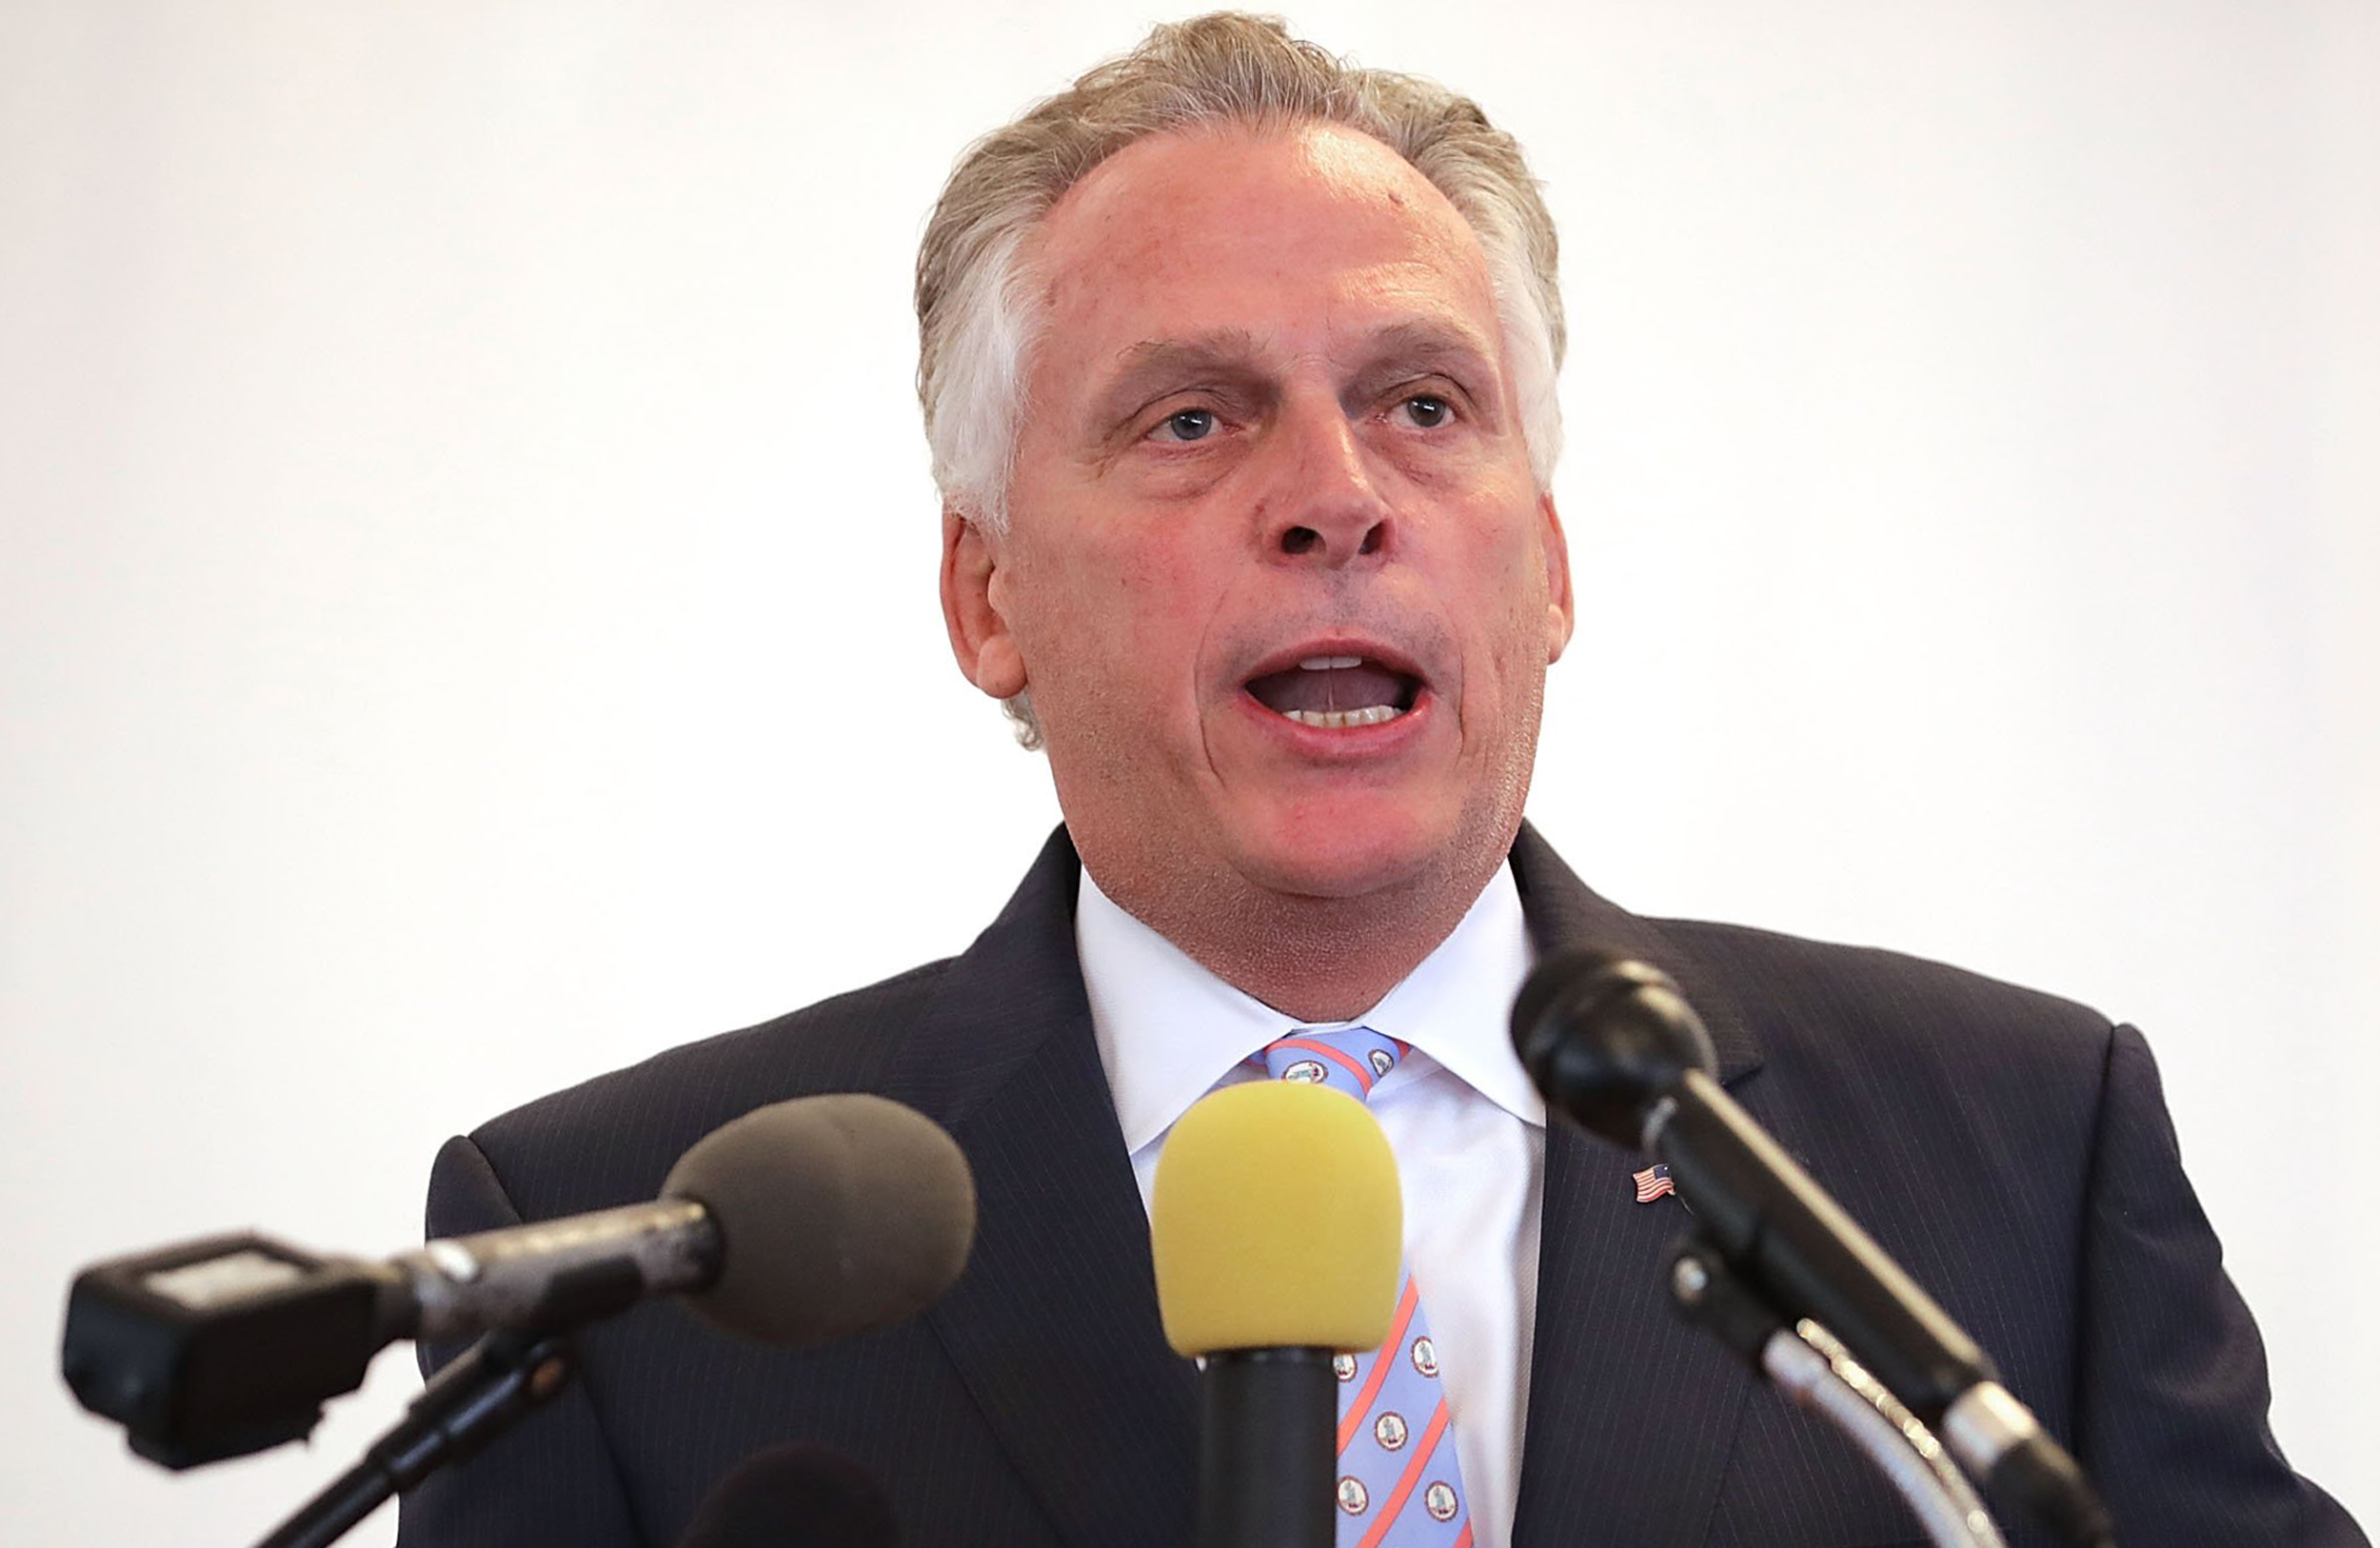 Virginia Governor Calls on Trump to Help Stop Hate Speech